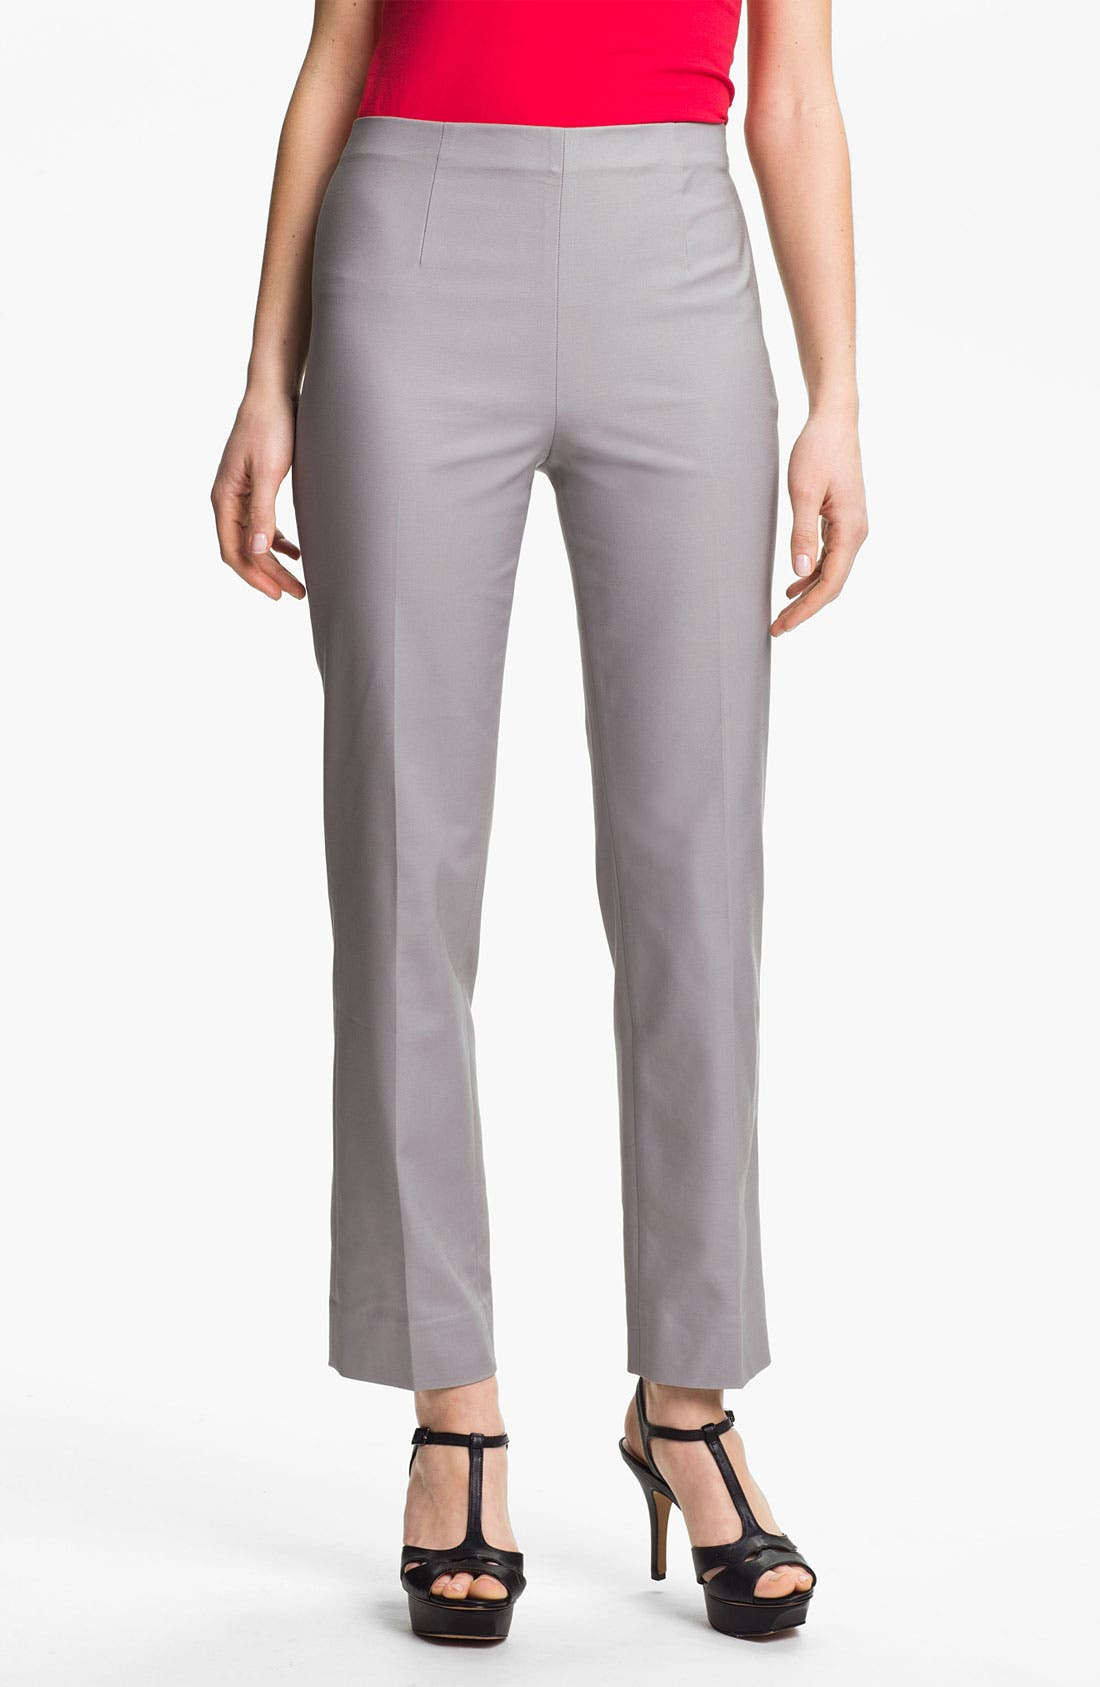 Main Image - Nic + Zoe 'Perfect' Ankle Pants (Petite)